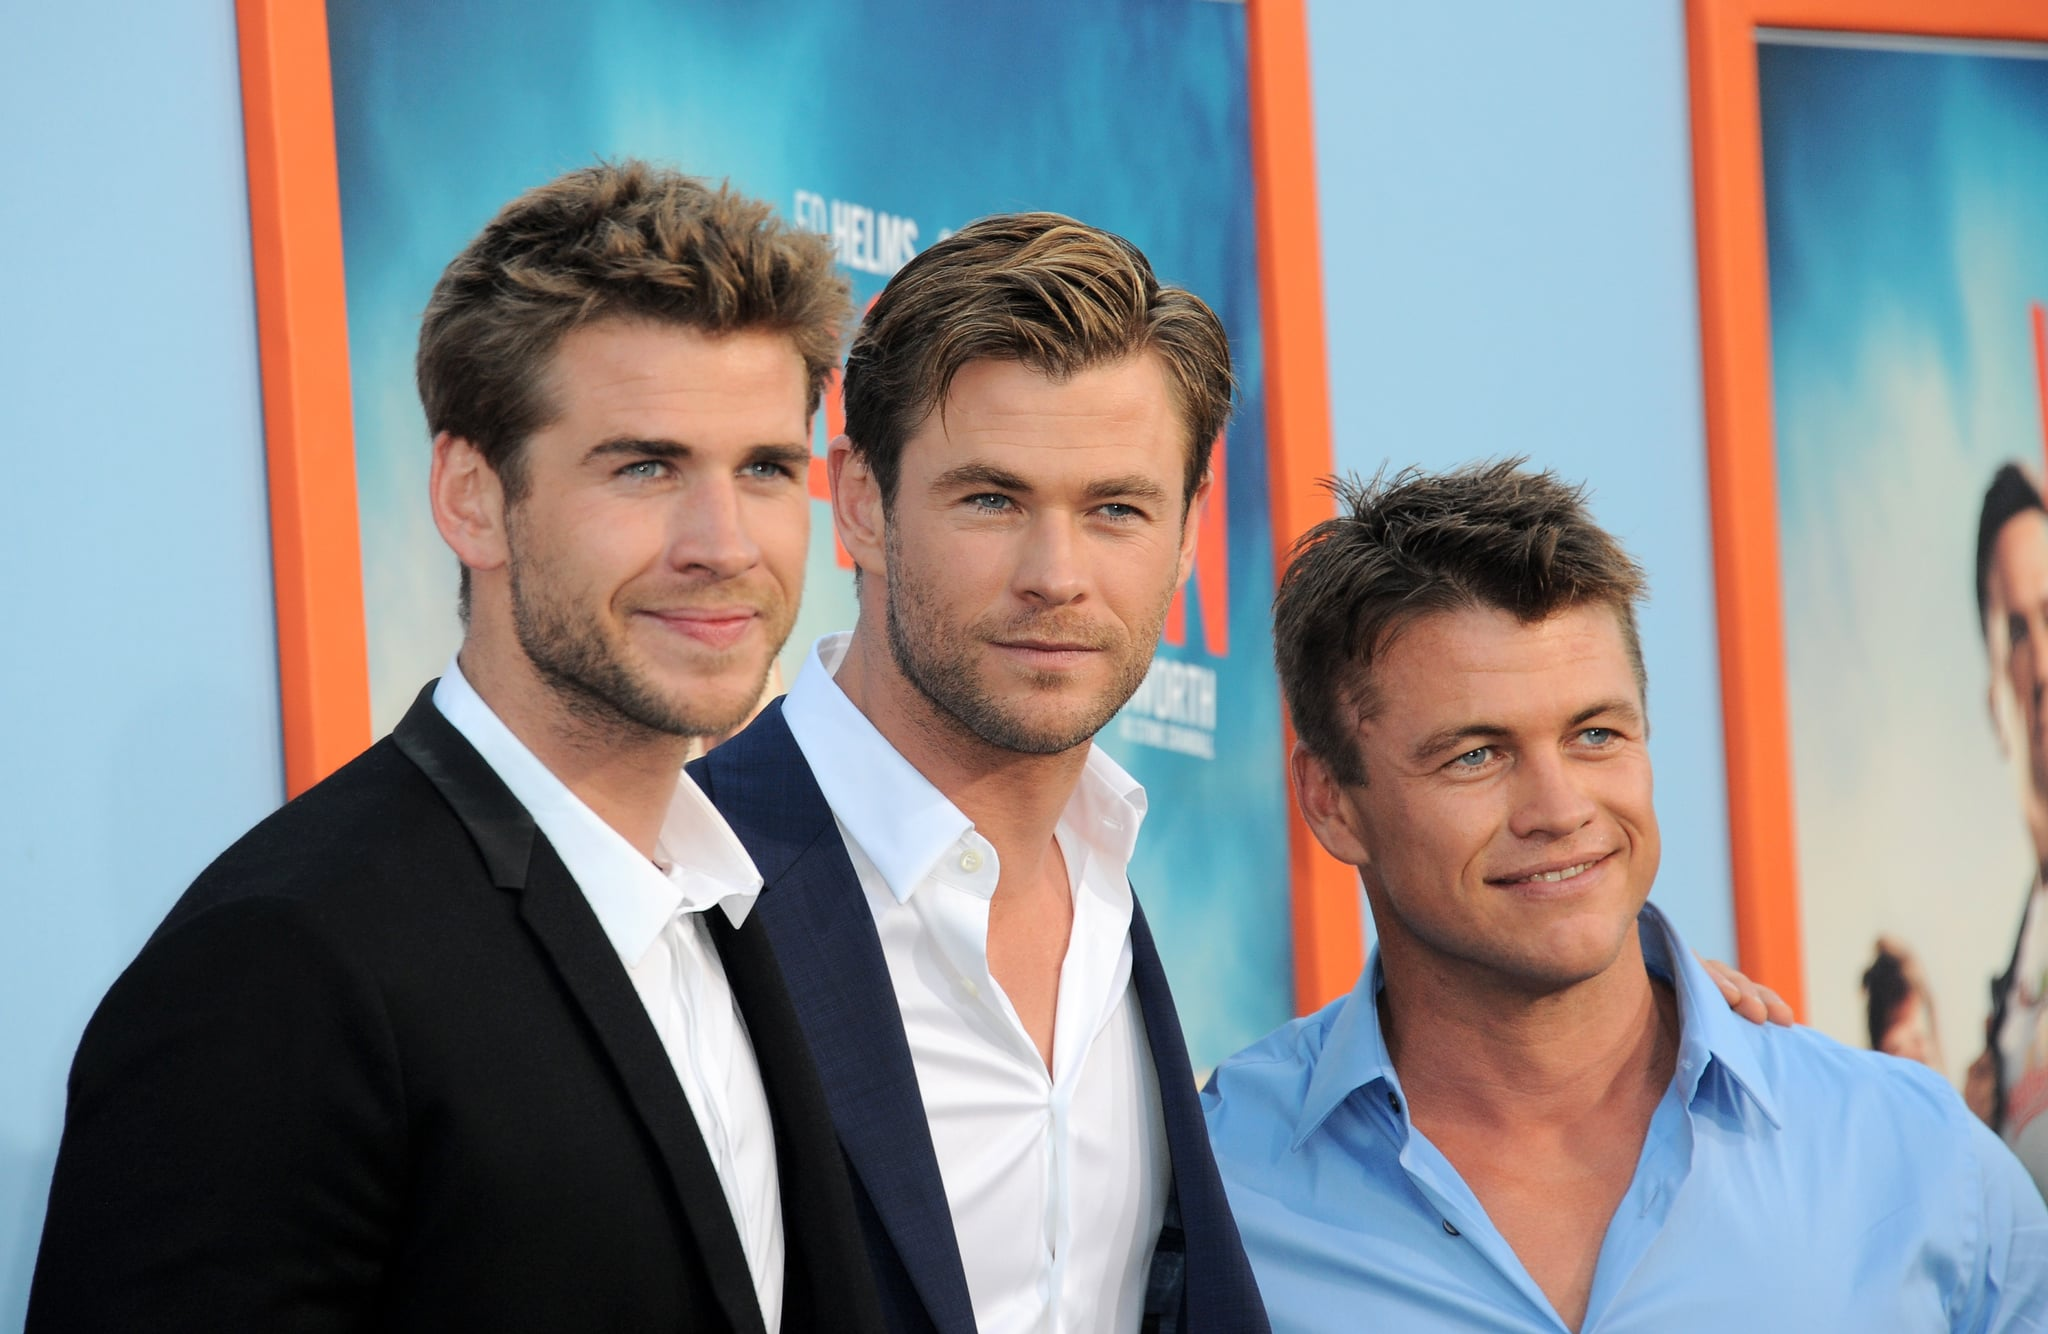 WESTWOOD, CA - JULY 27:  Actors/brothers Liam Hemsworth, Luke Hemsworth and Chris Hemsworth arrive for the Premiere Of Warner Bros. Pictures'